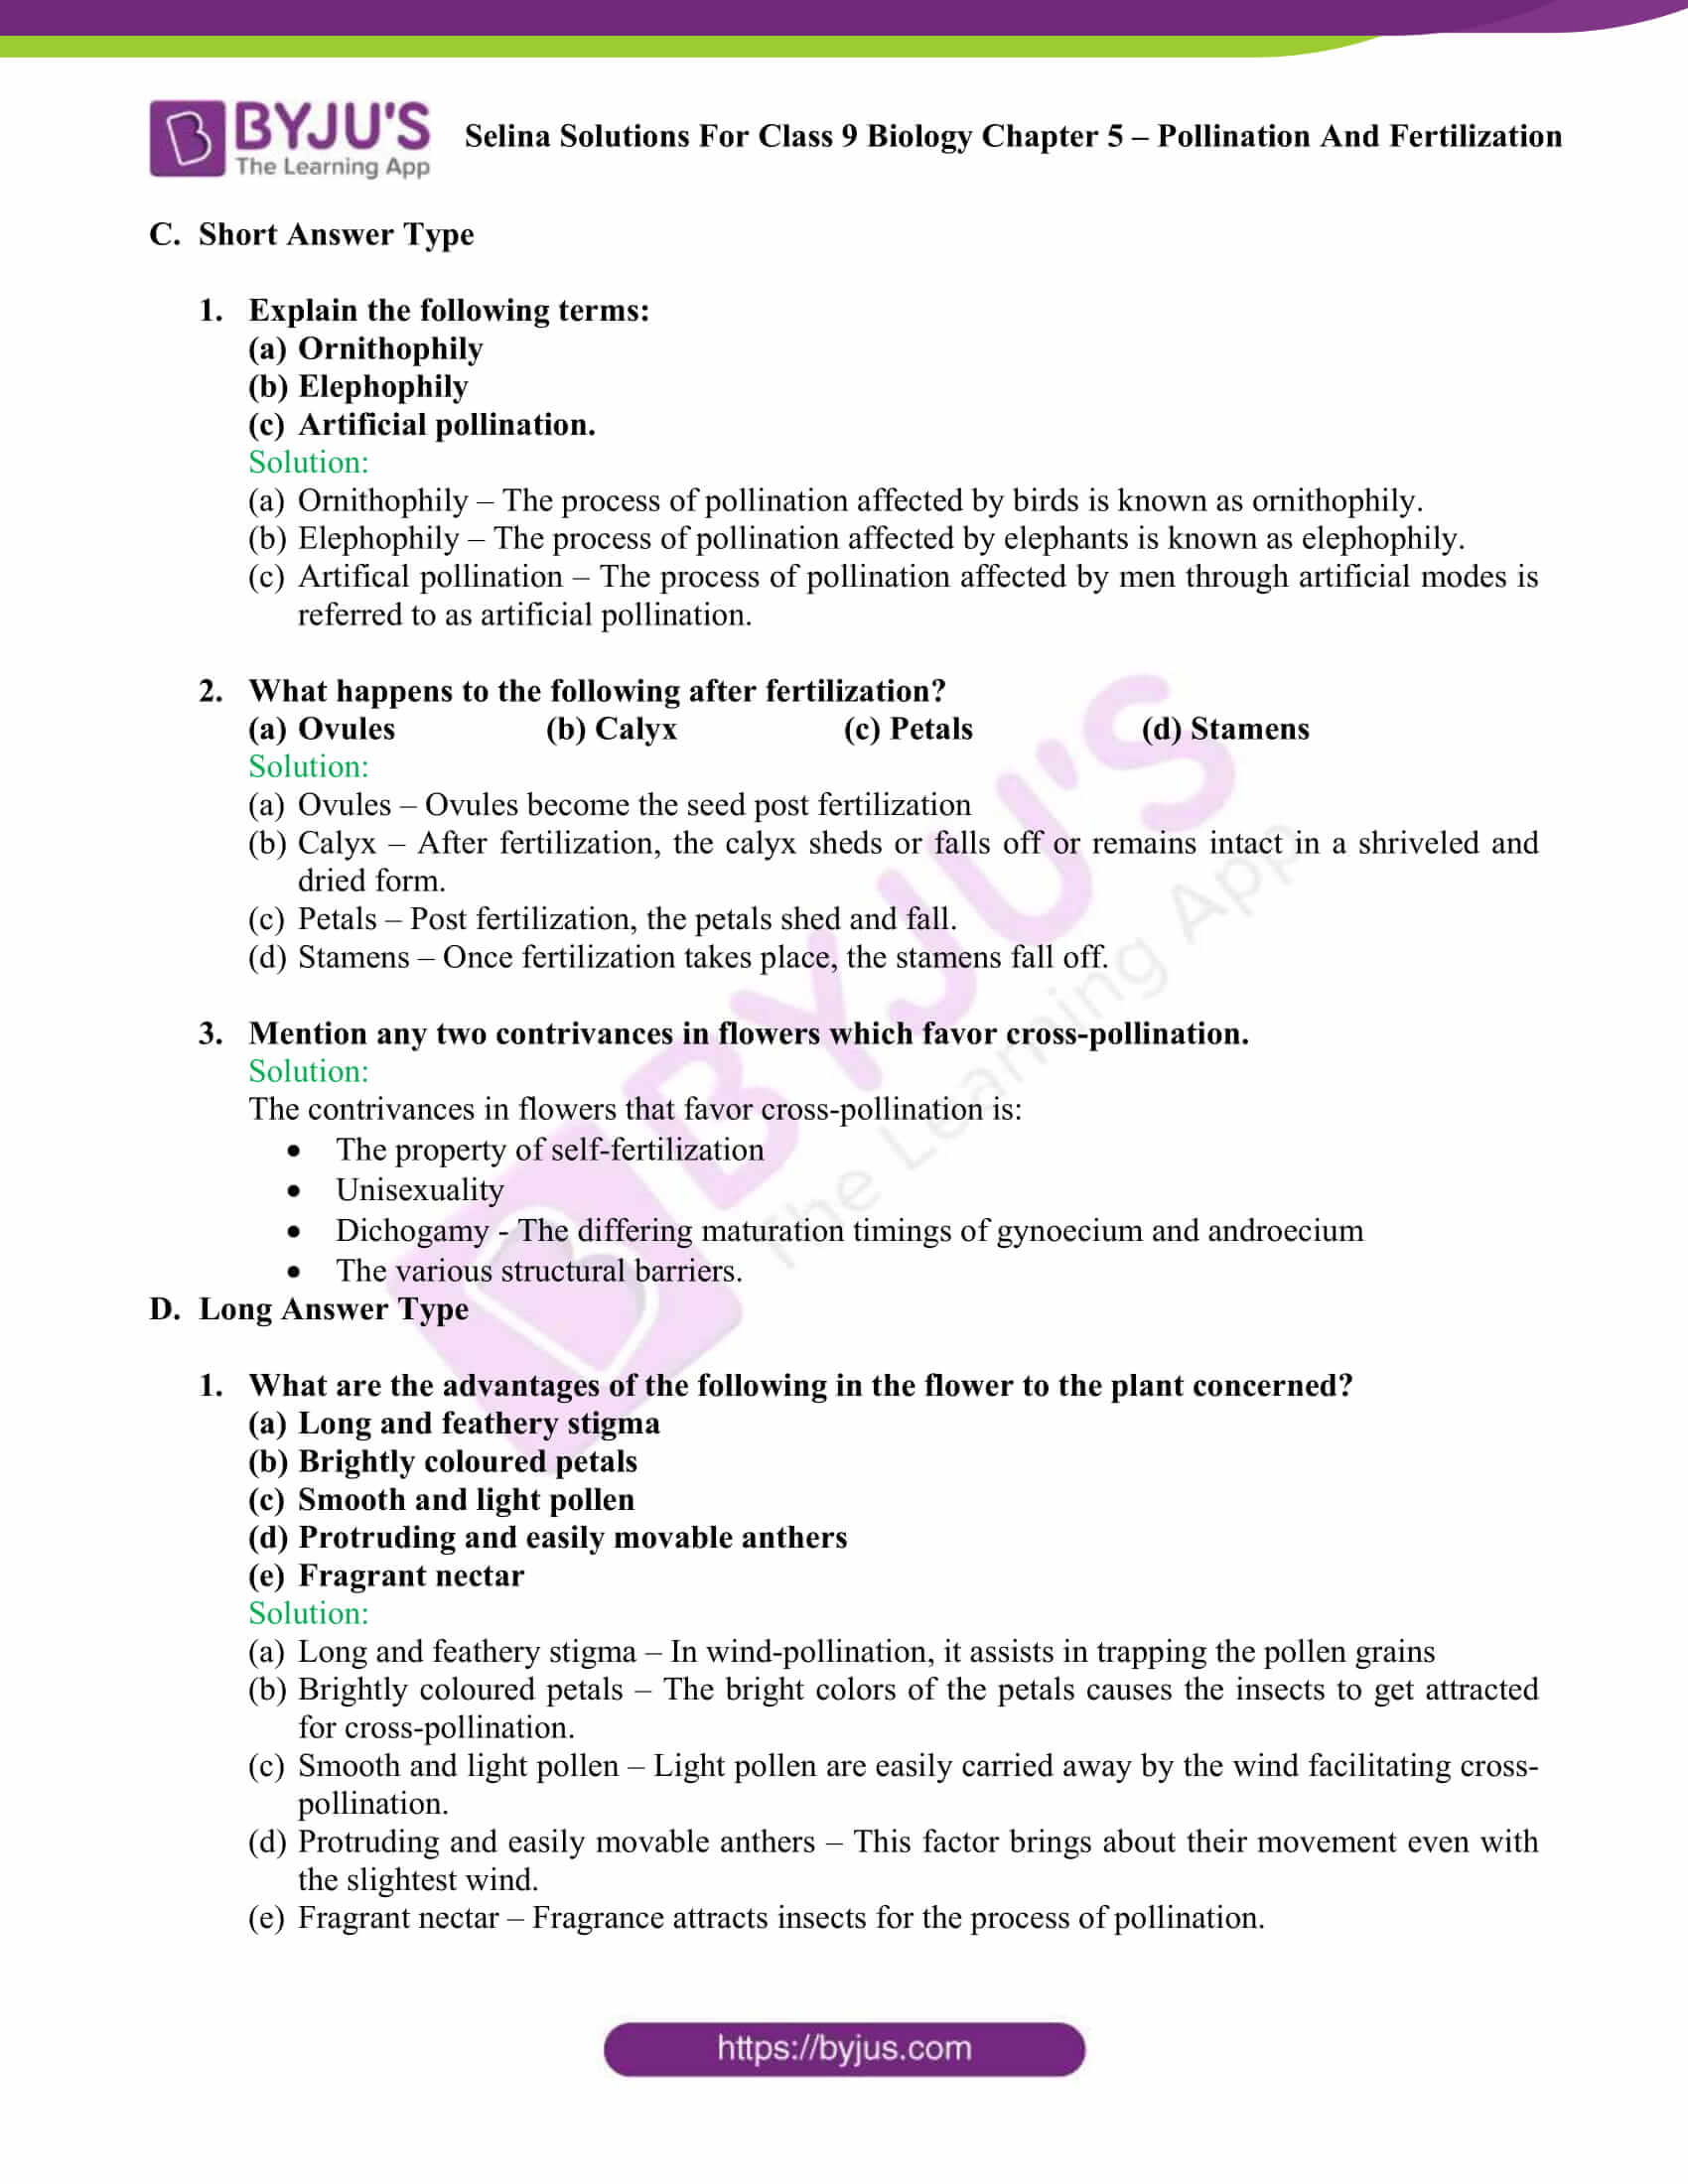 Selina Solutions For Class 9 Biology Chapter 5 Pollination And Fertilization part 05